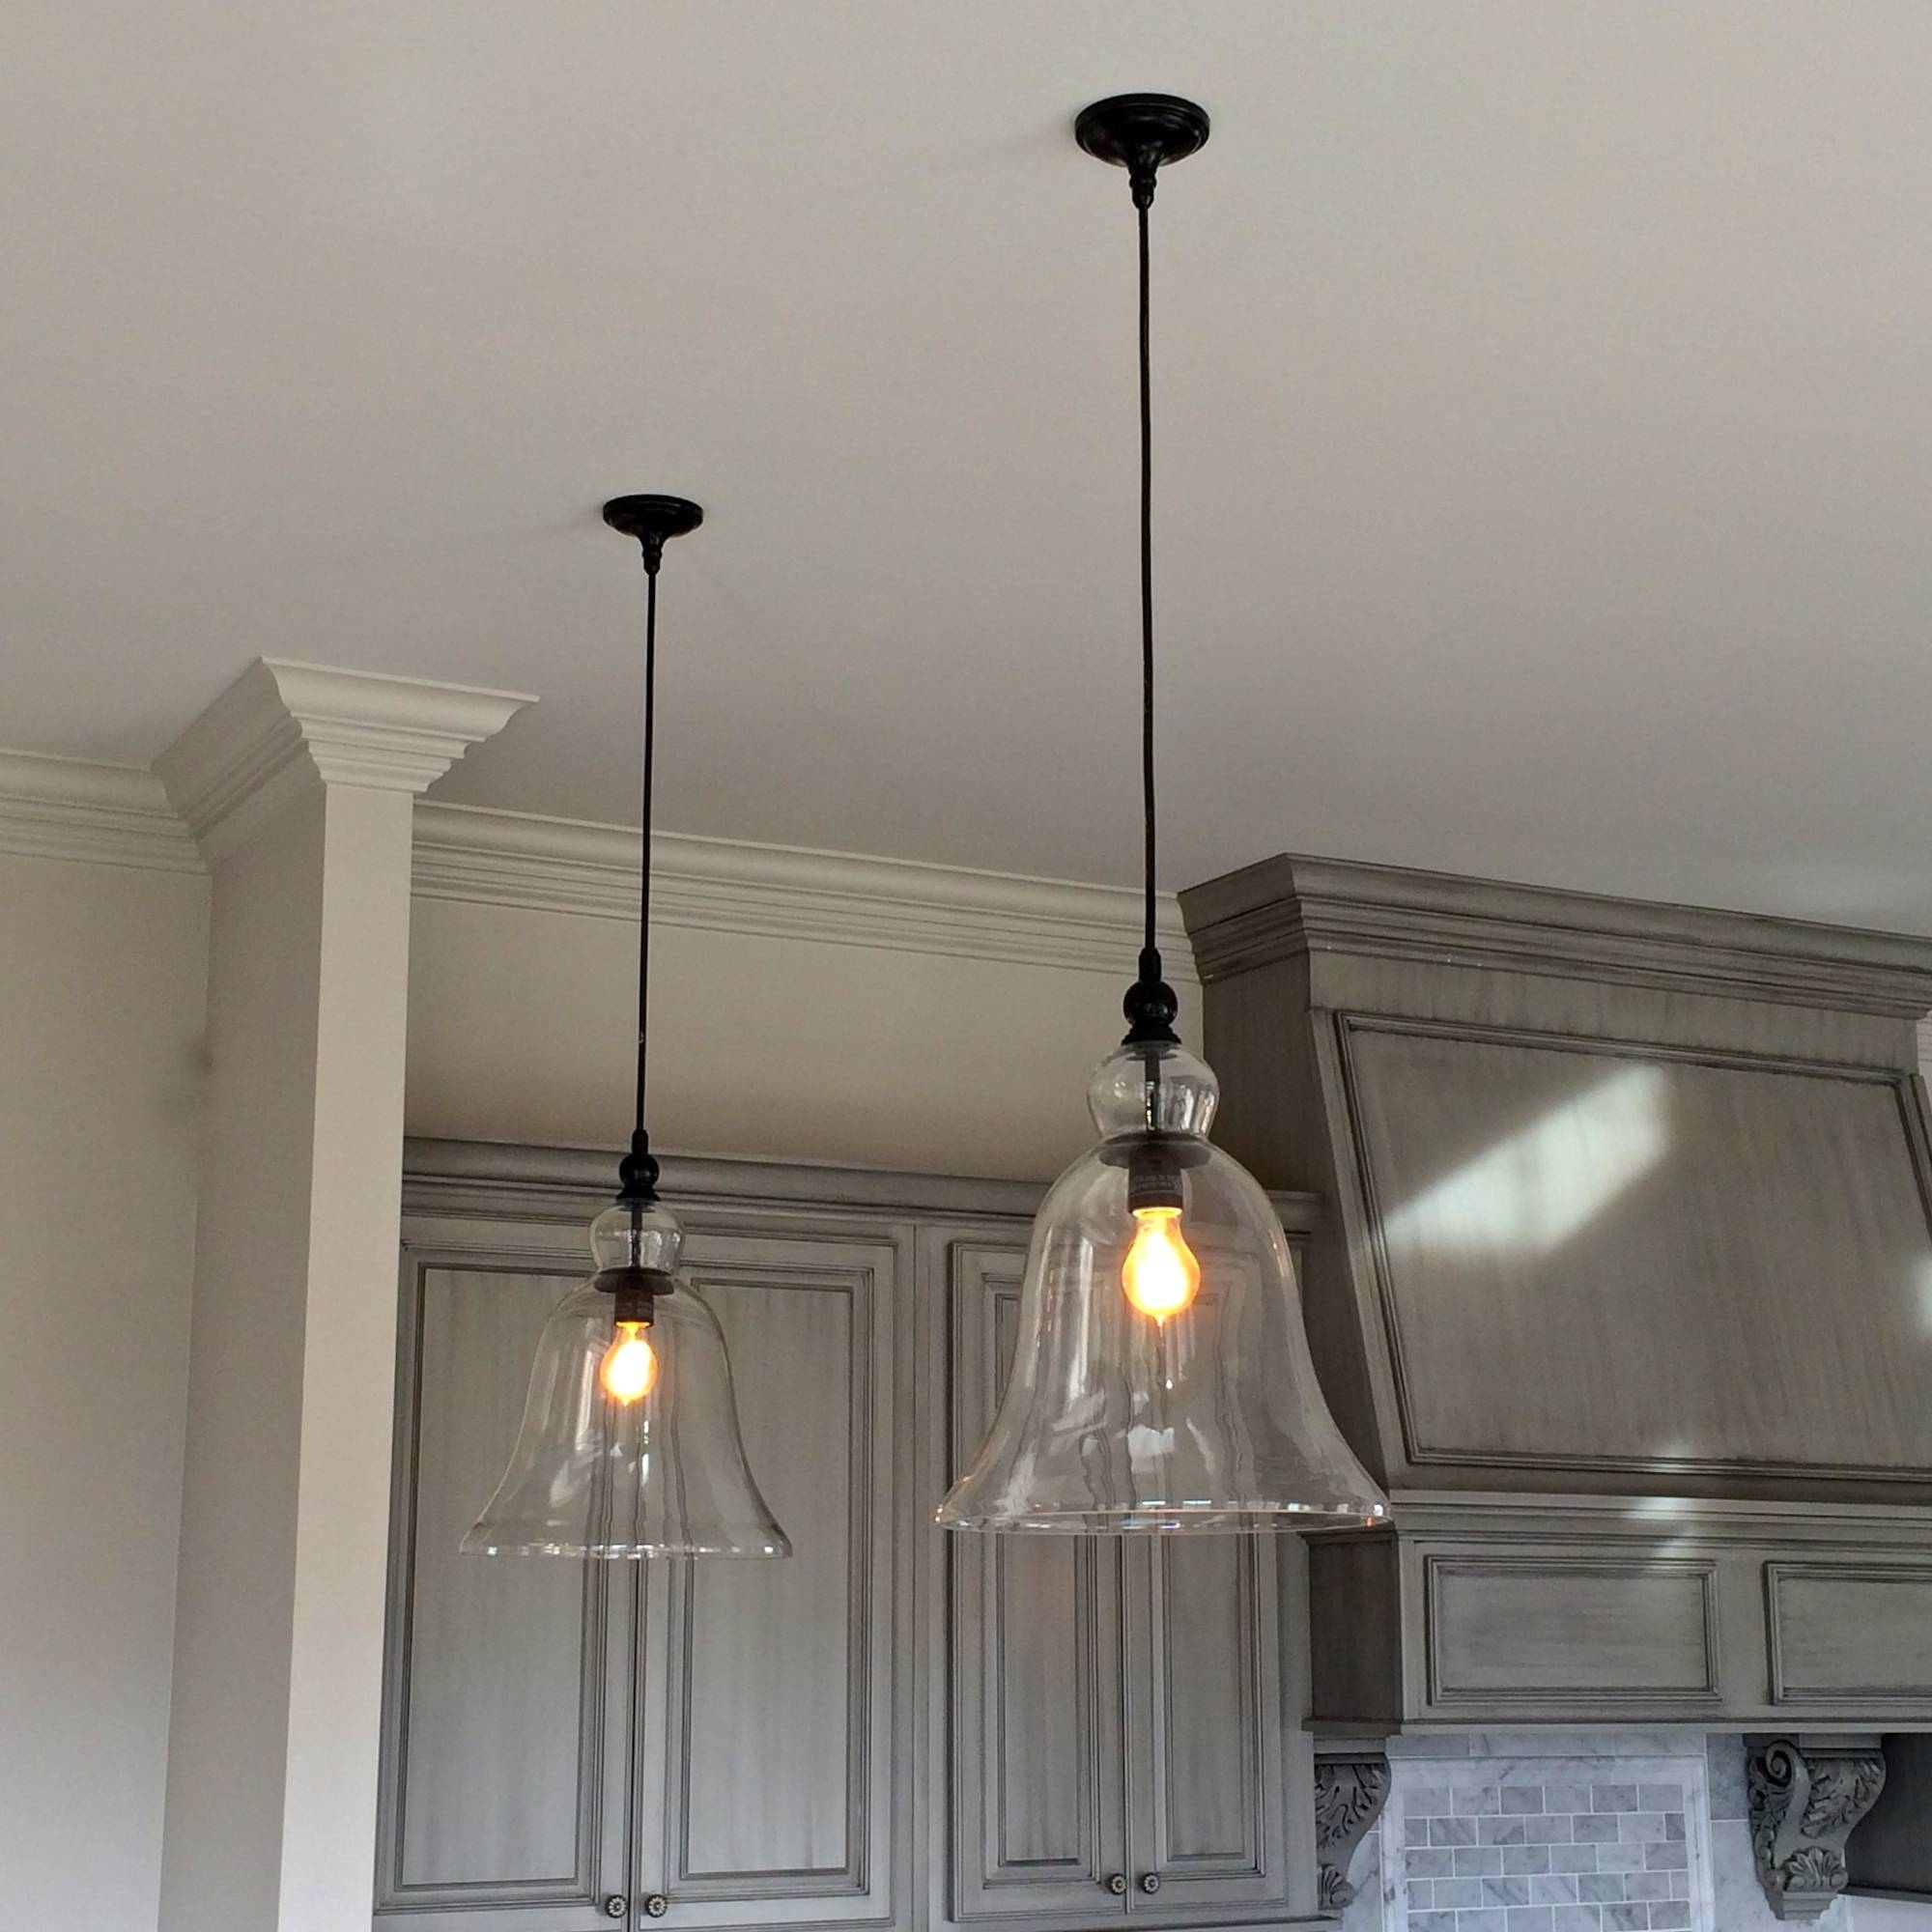 Lighting : Awesome Mini Pendant Lights For Kitchen Island With Long Hanging Pendant Lights (View 9 of 15)